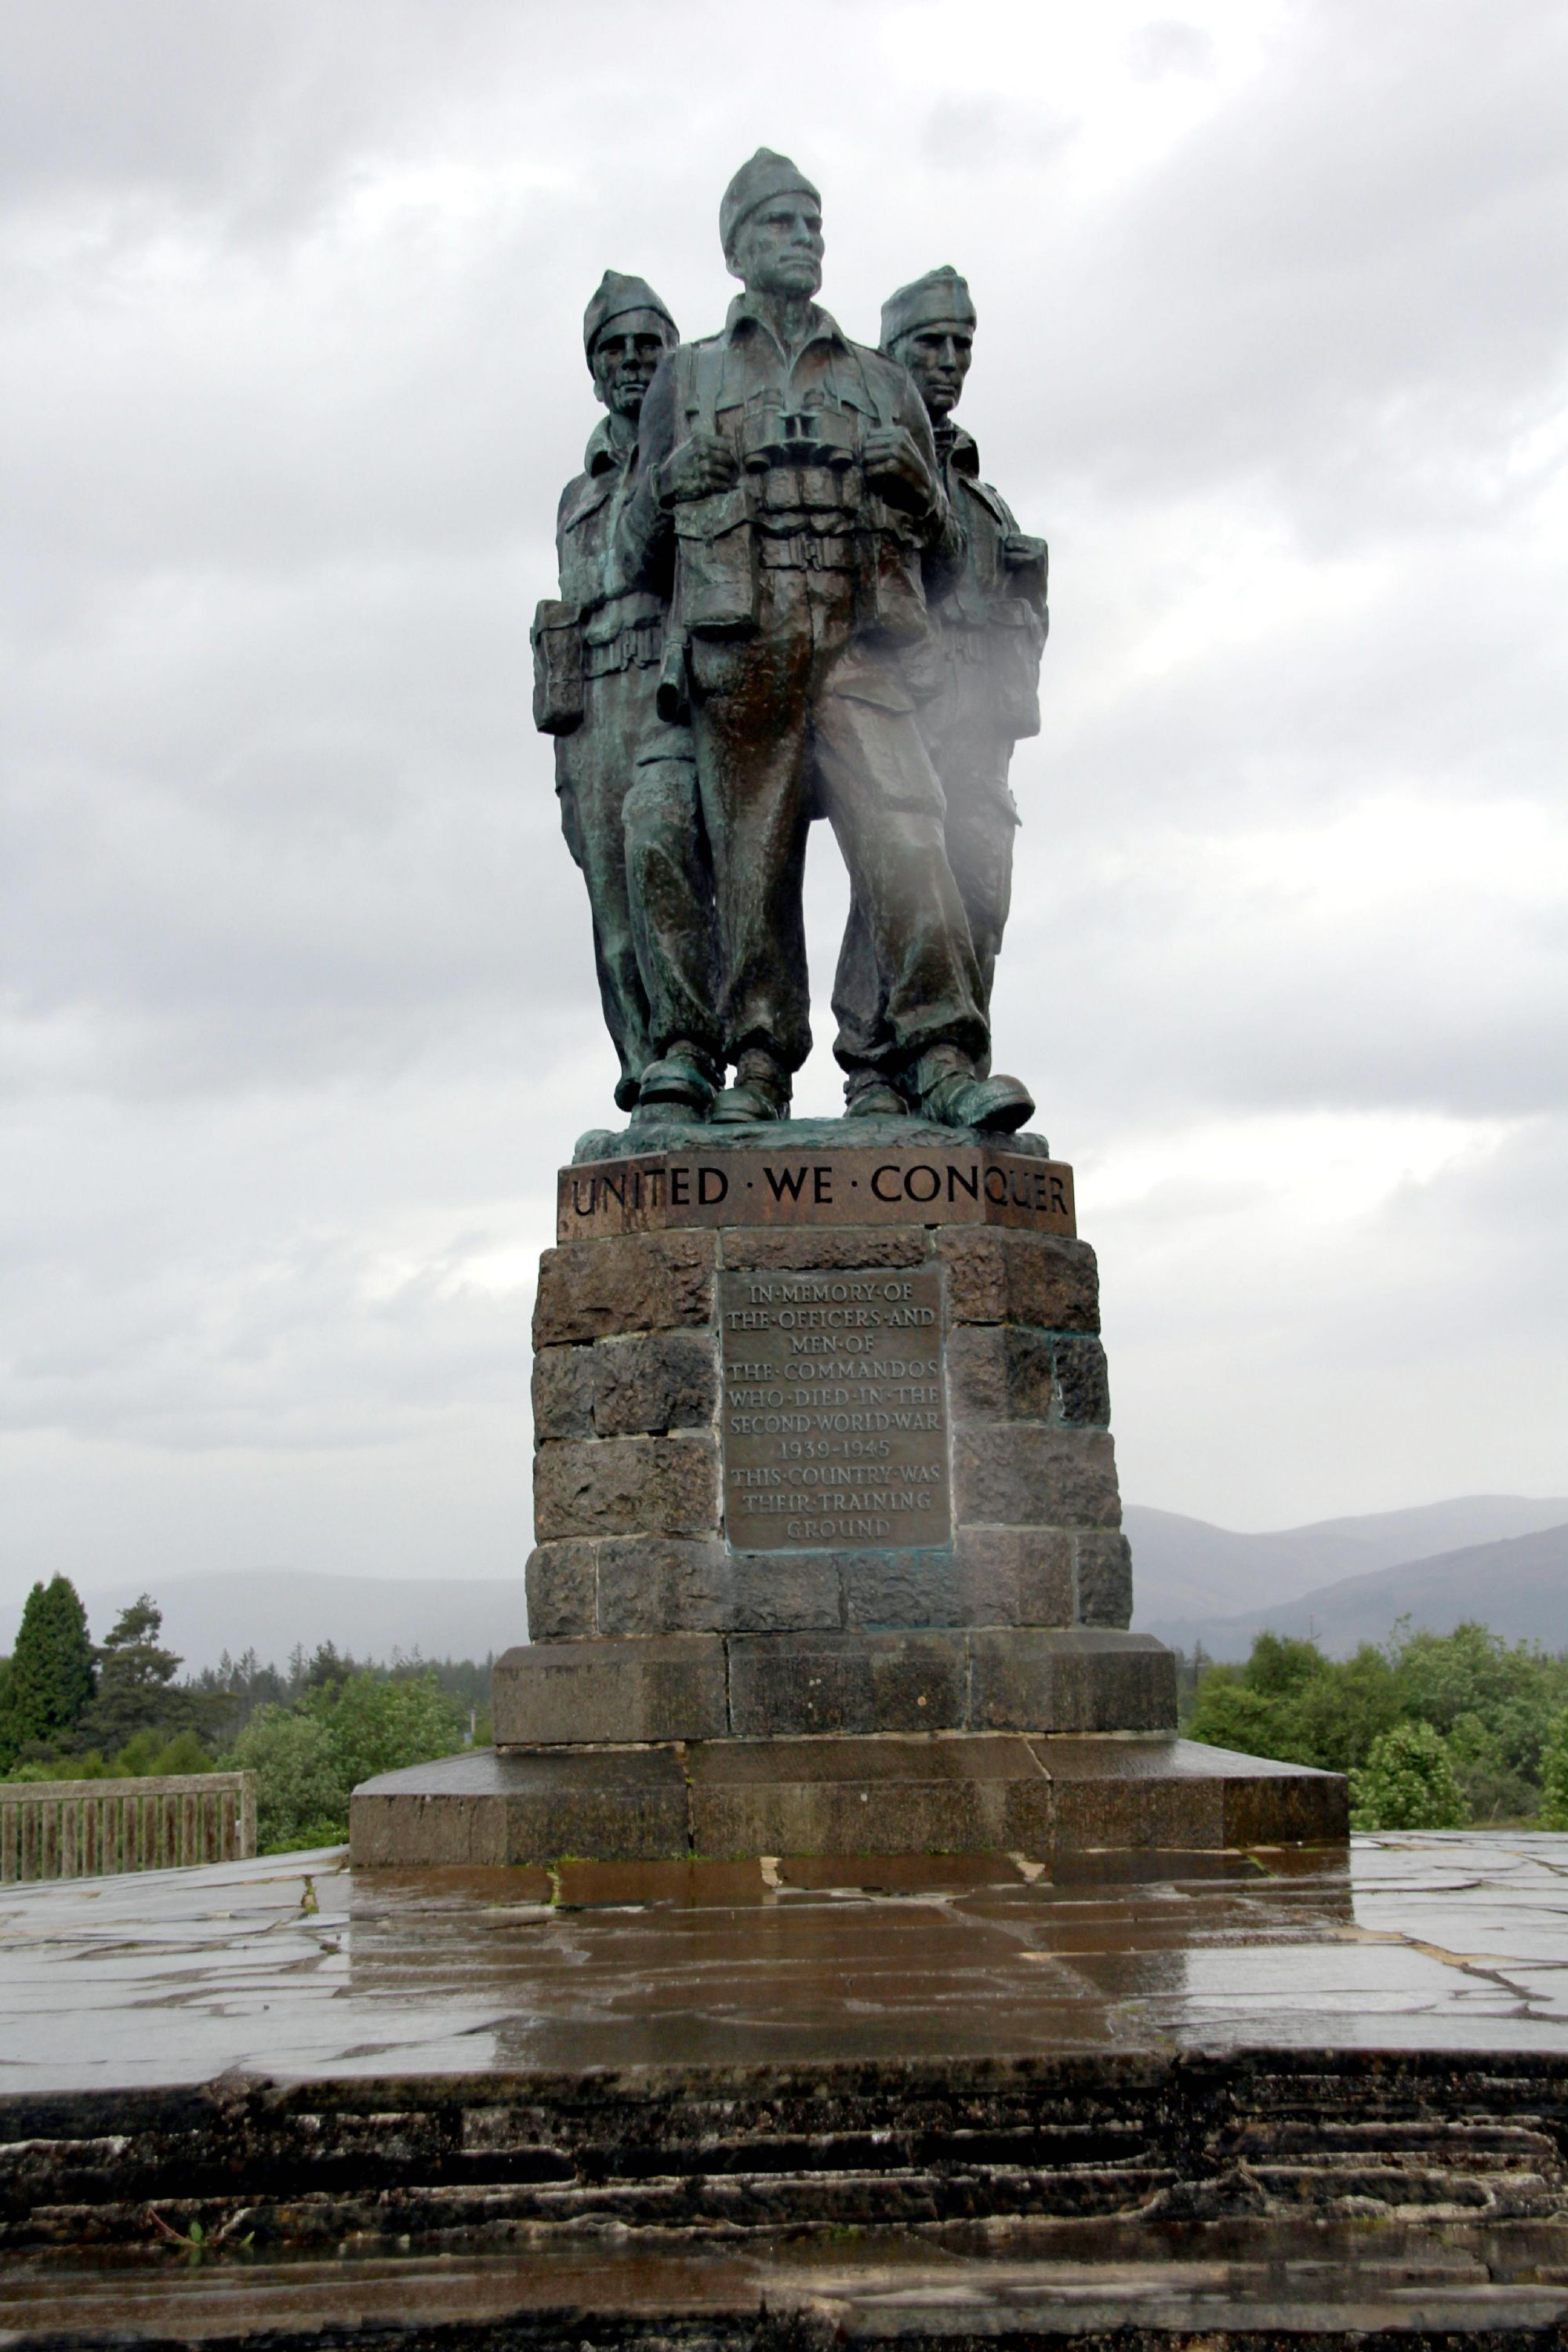 Commandoes commemorated